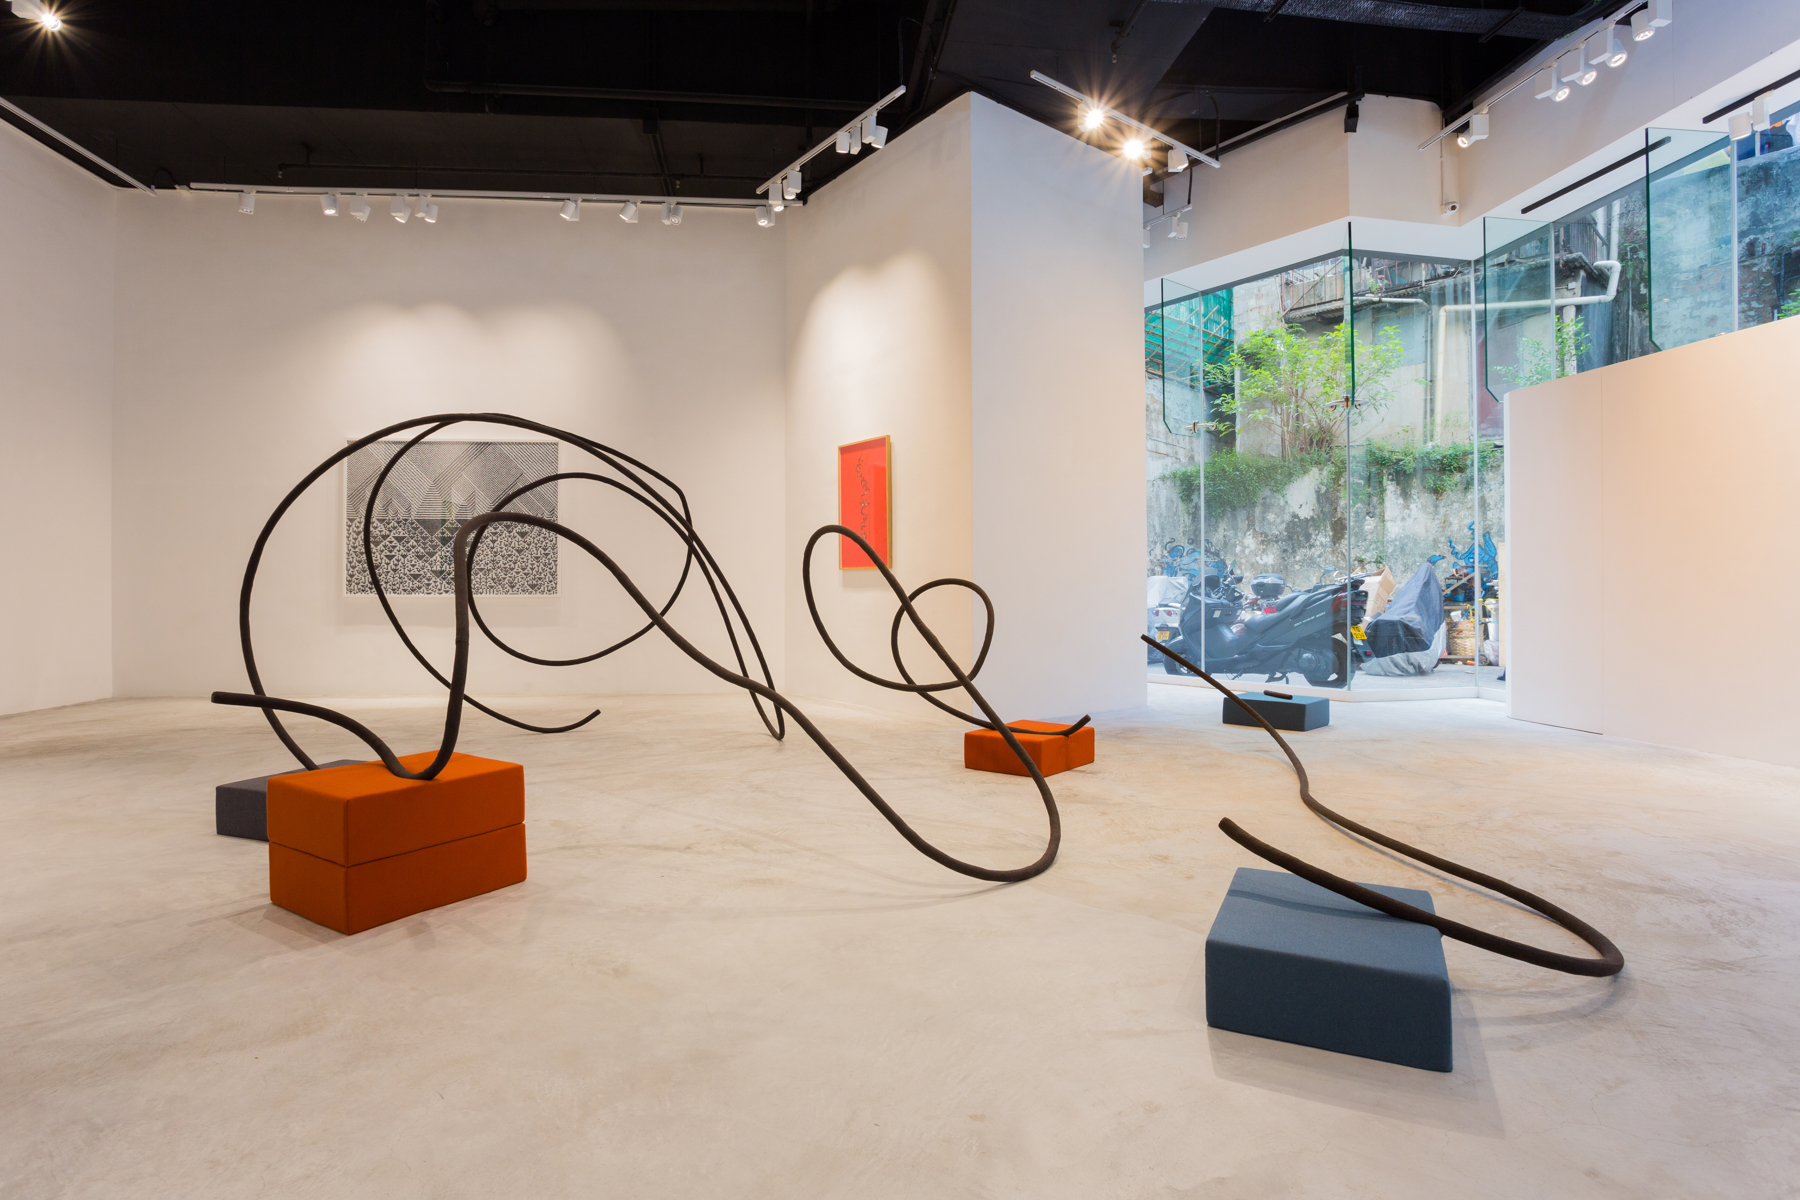 'A Point of Signification', Installation View at Galerie Huit, 2015 | Troika (Conny Freyer, Eva Rucki, Sebastien Noel)